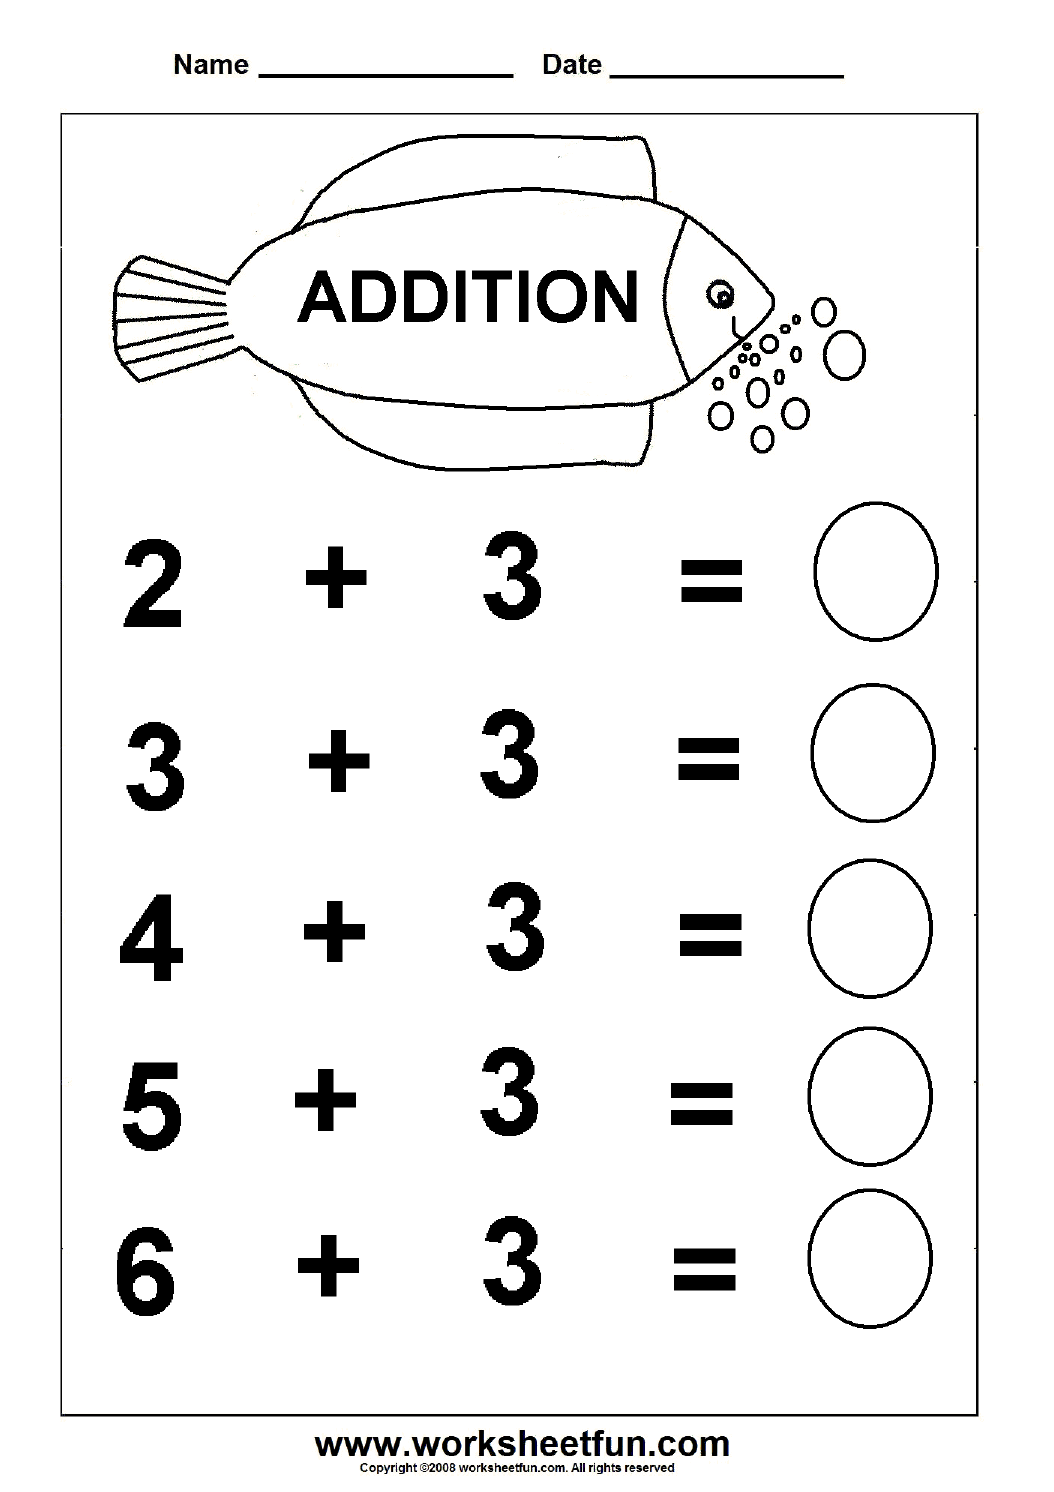 Worksheets Free Printable Simple Addition Worksheets addition basic facts free printable worksheets beginner 6 kindergarten worksheets